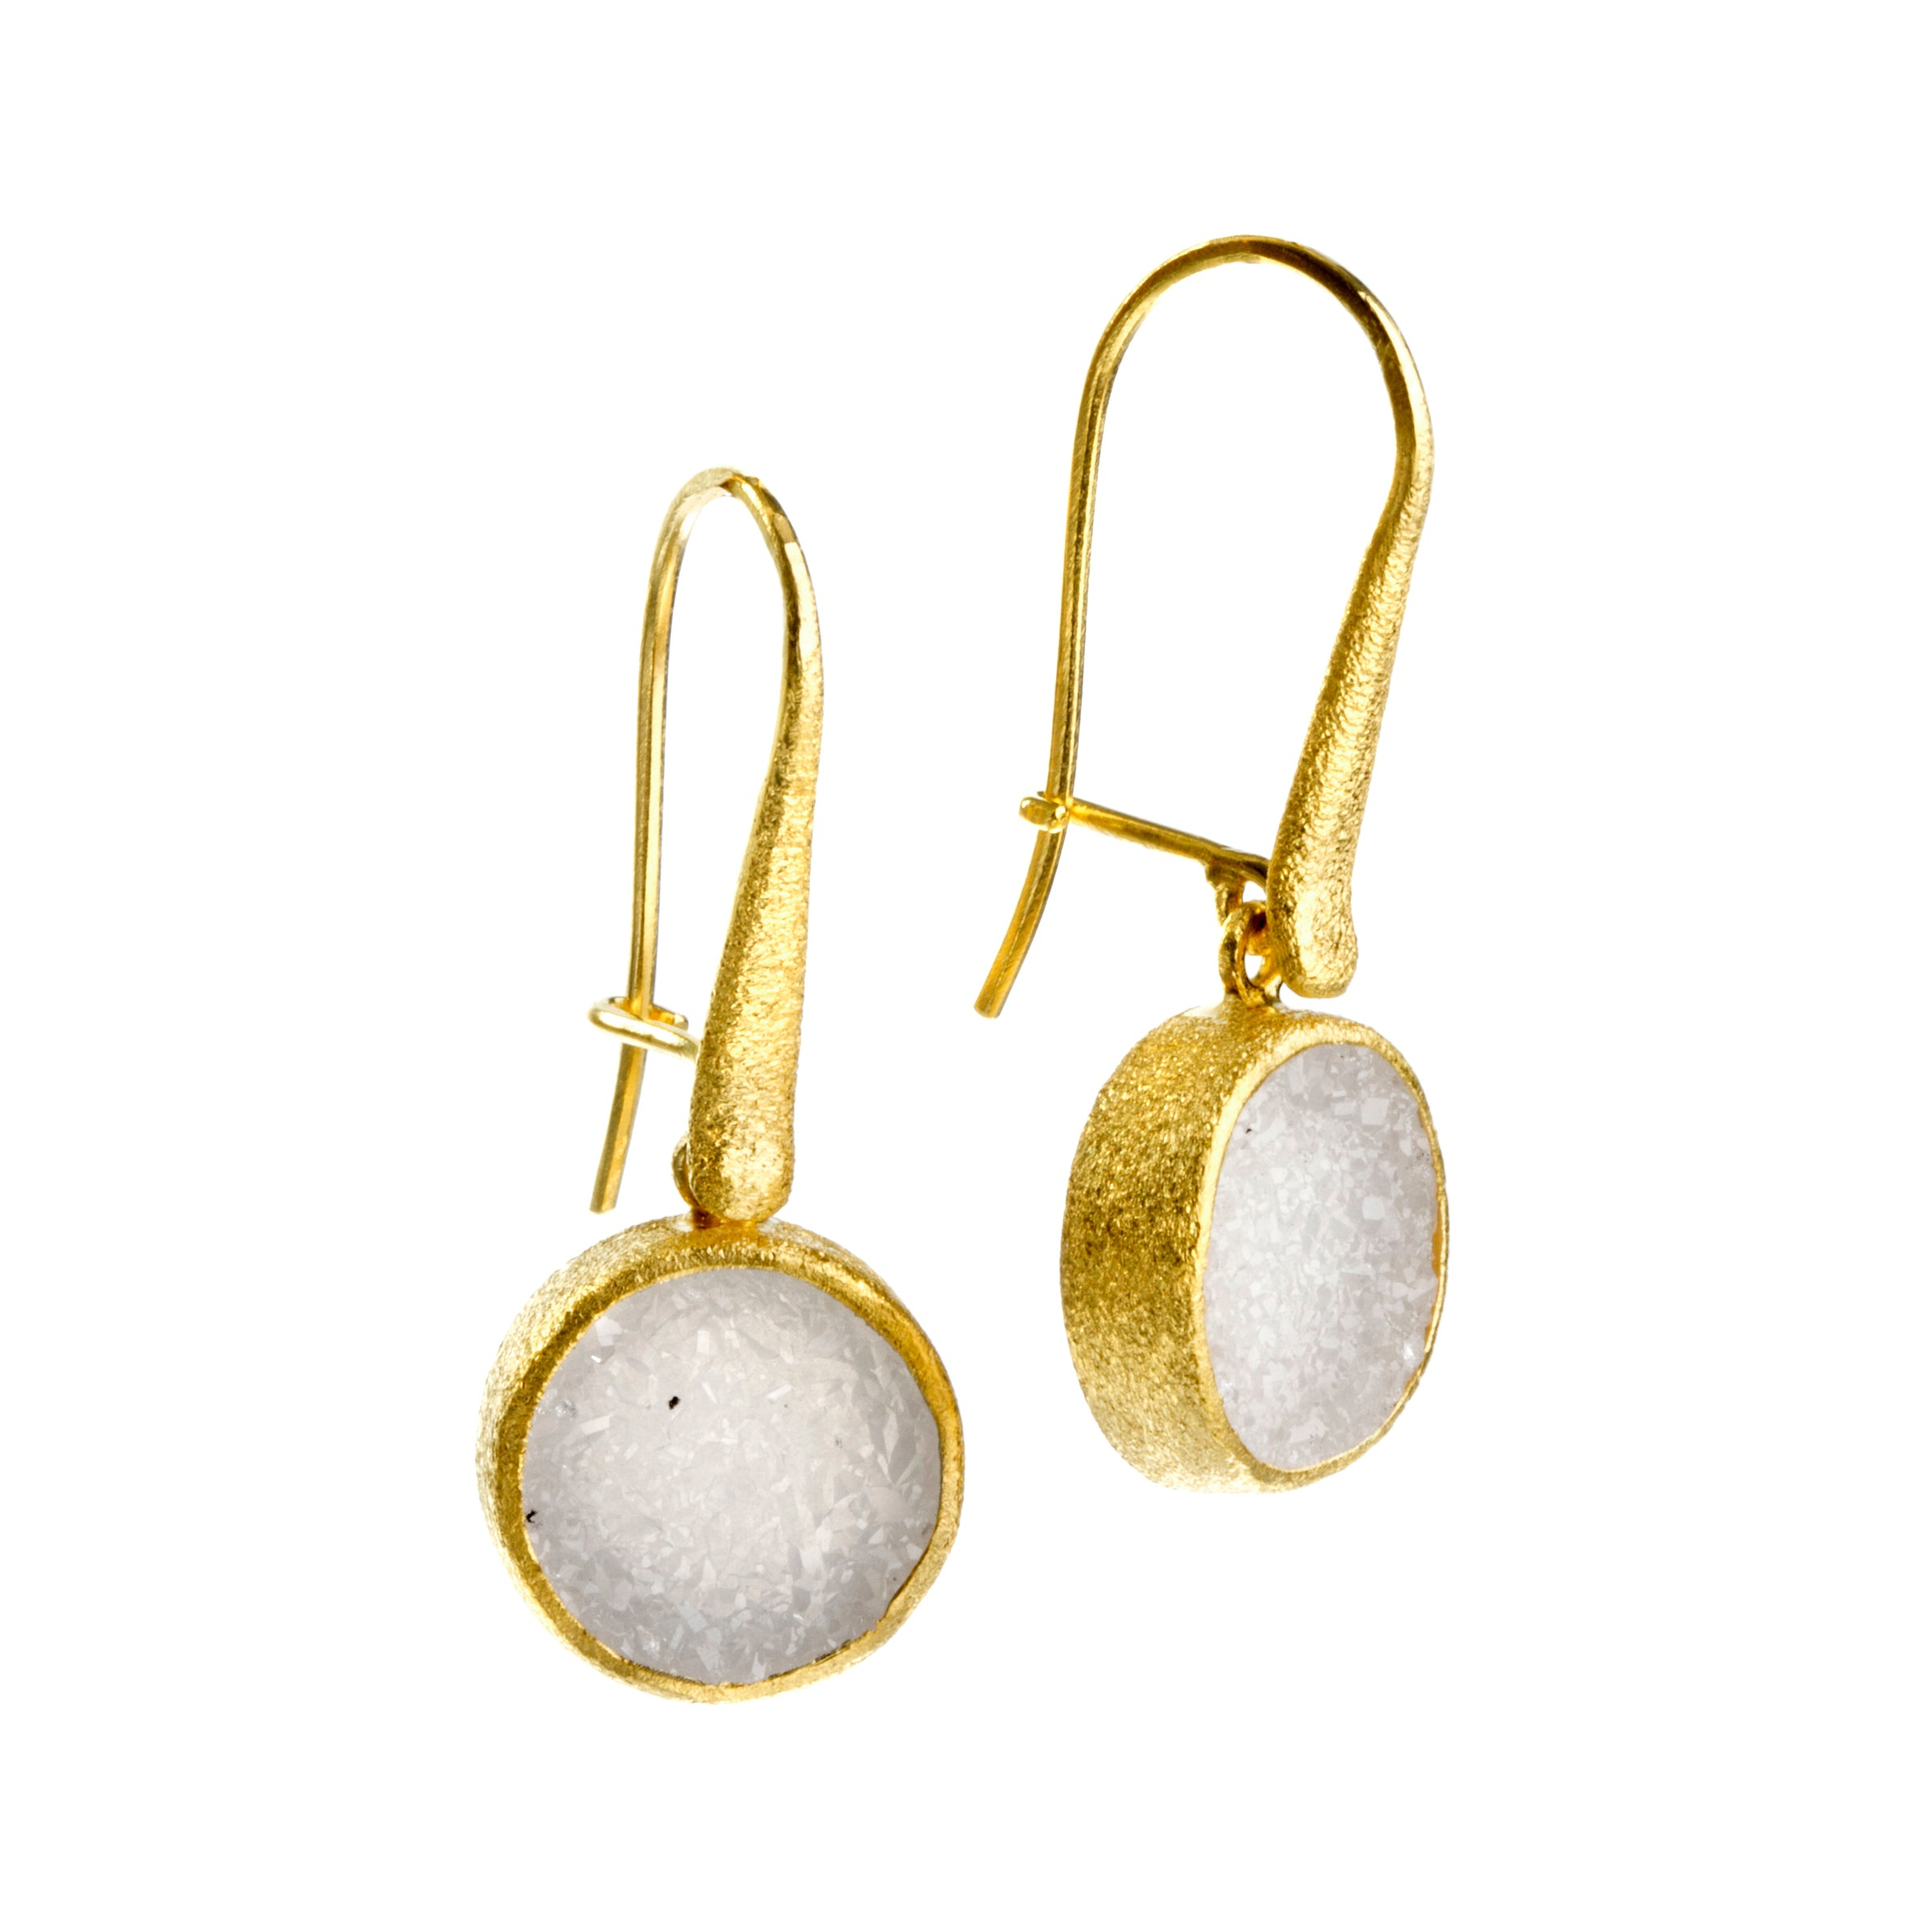 White Druzy Drop Earrings, 22K Vermeil